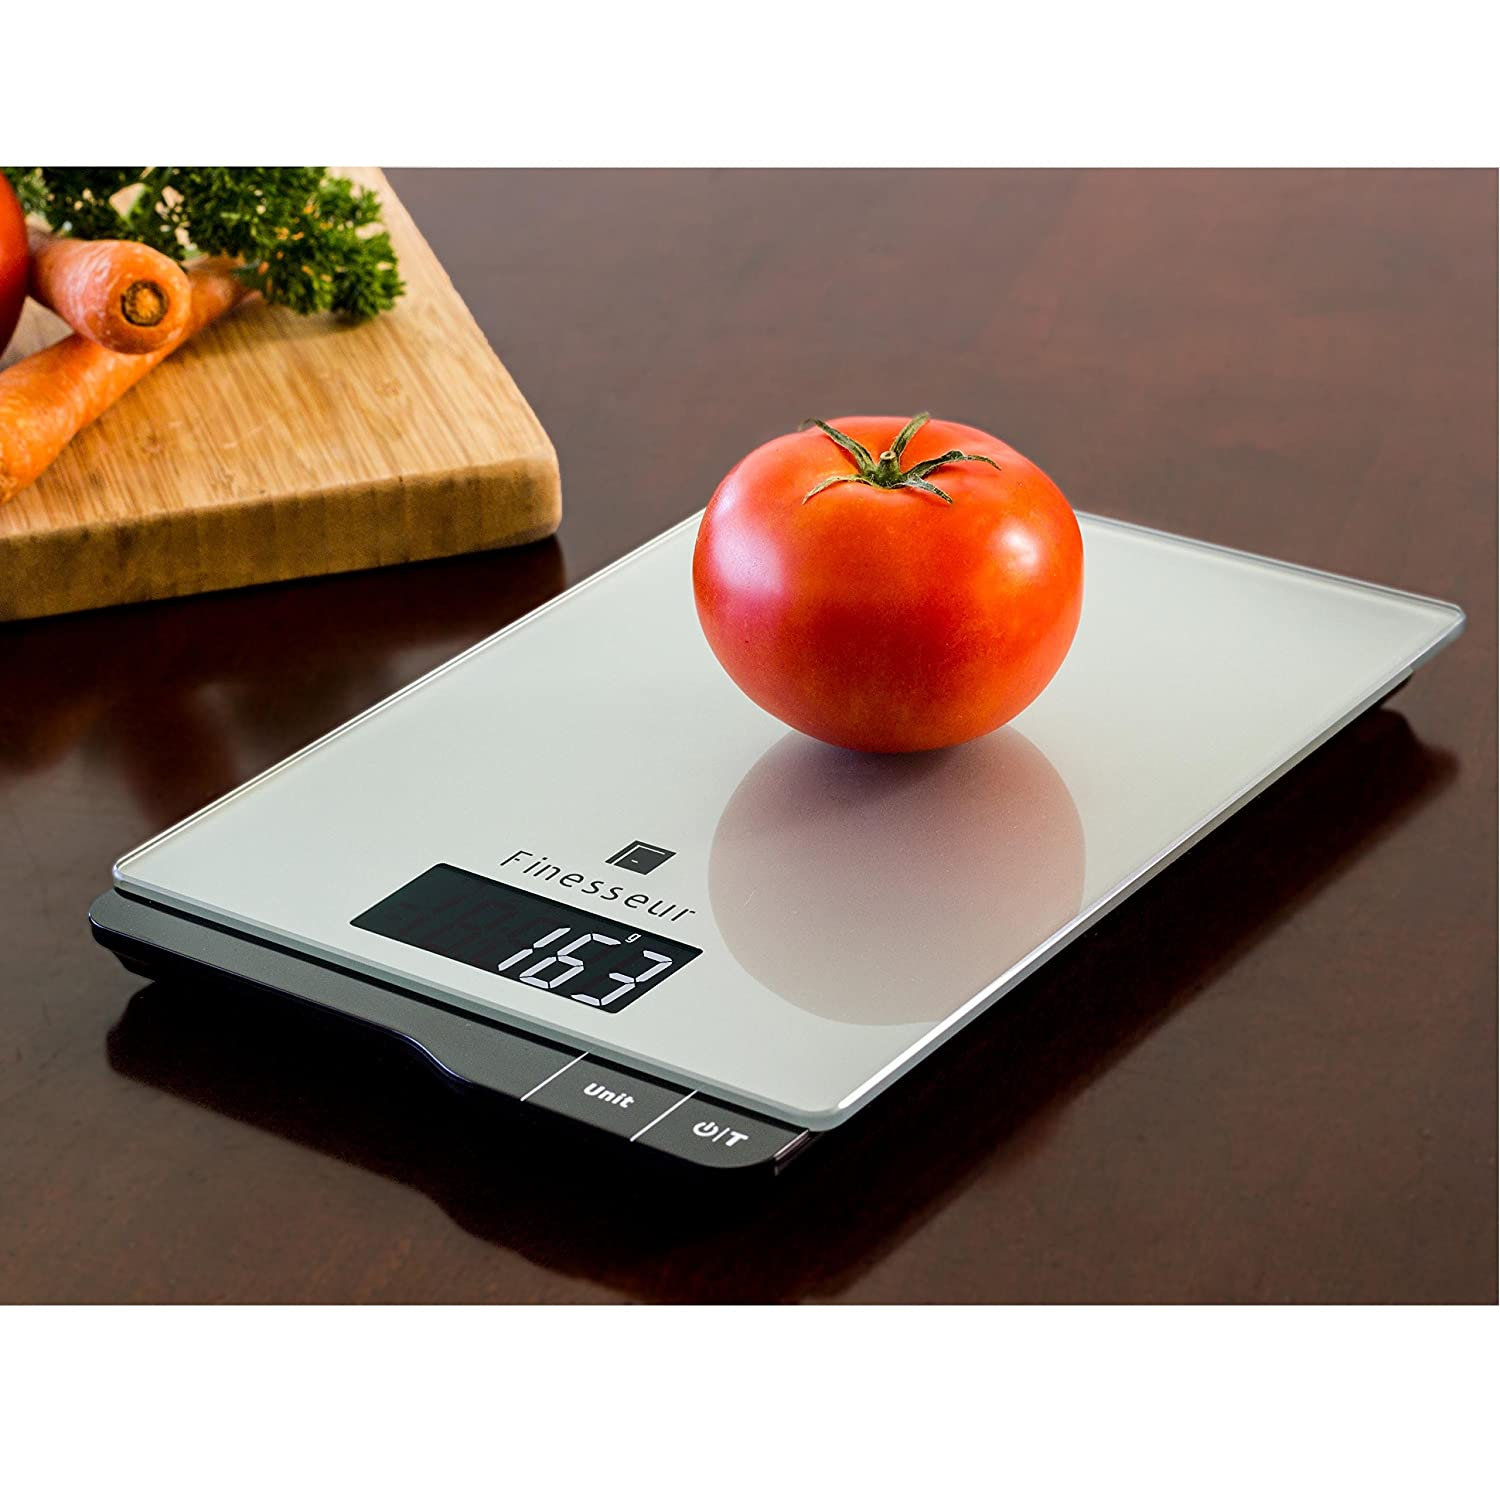 finesseur sv2501 877 digital kitchen food scale best digital scales